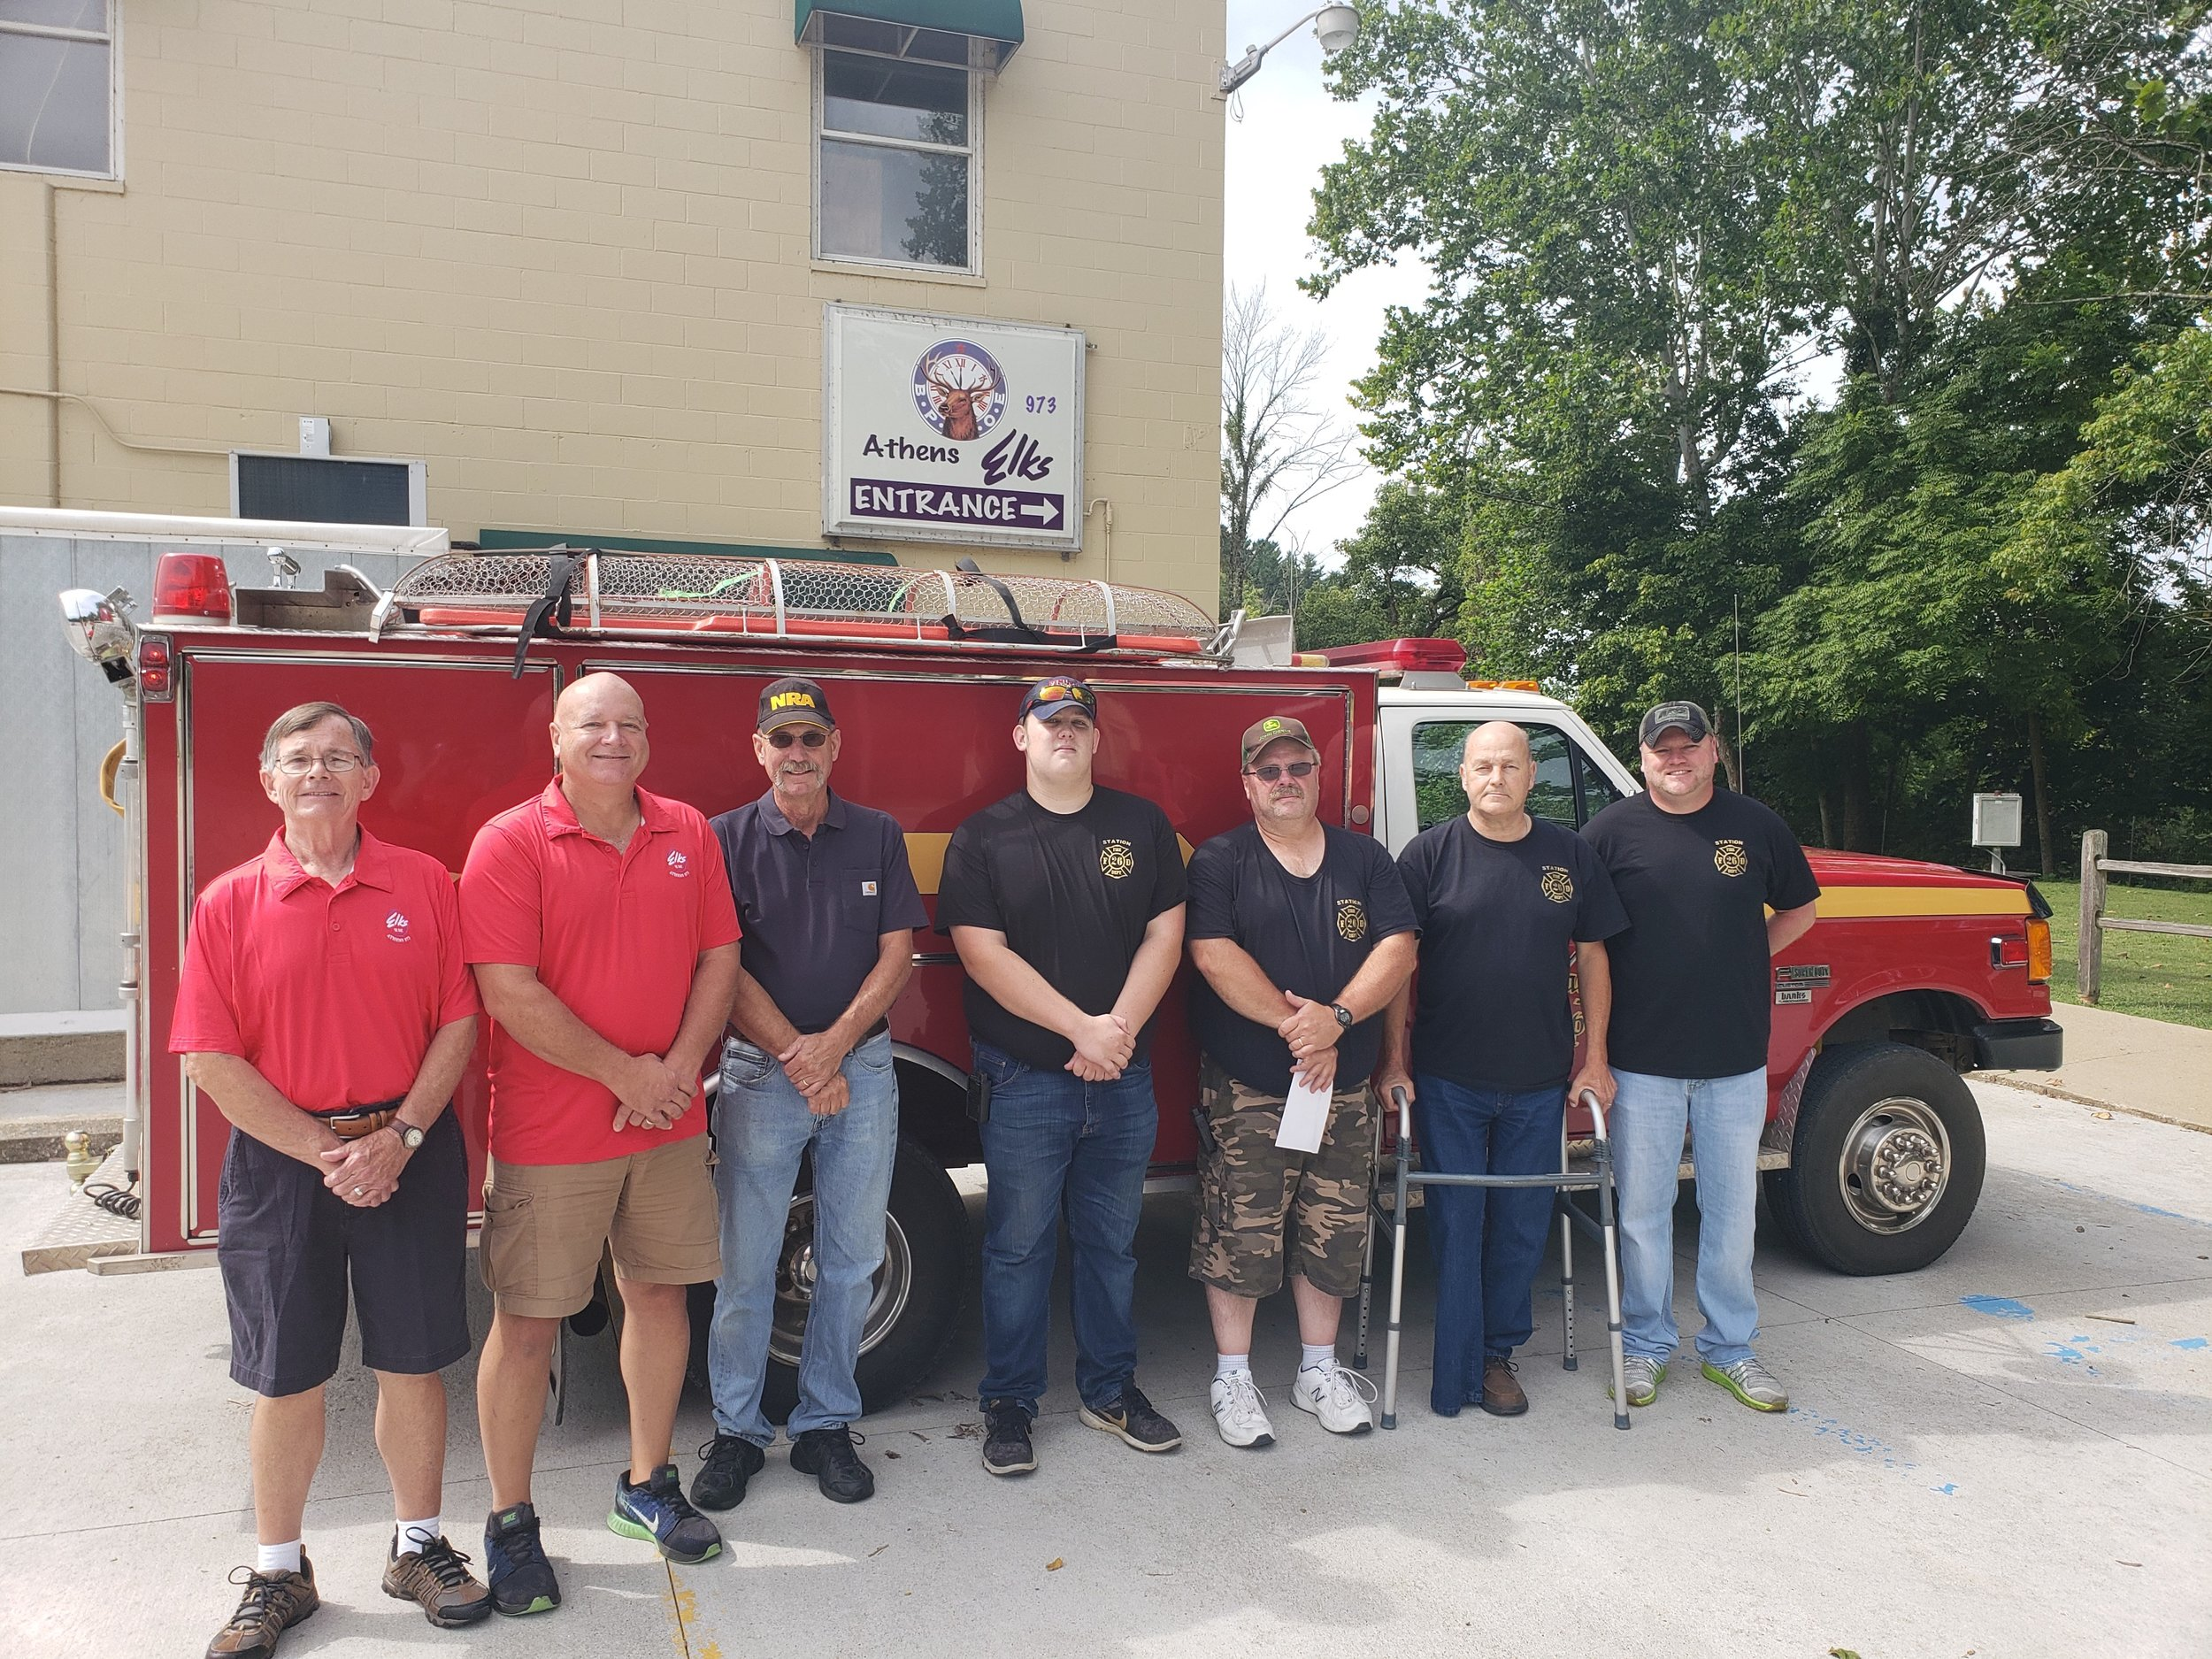 Fro left:  Athens Elks members Jim Balding, Rich Russell and Ernie Perry and from Carthage Township FD are Jerrick Nutter, Chris Nutter, Jameson Allen and Jim Allen.